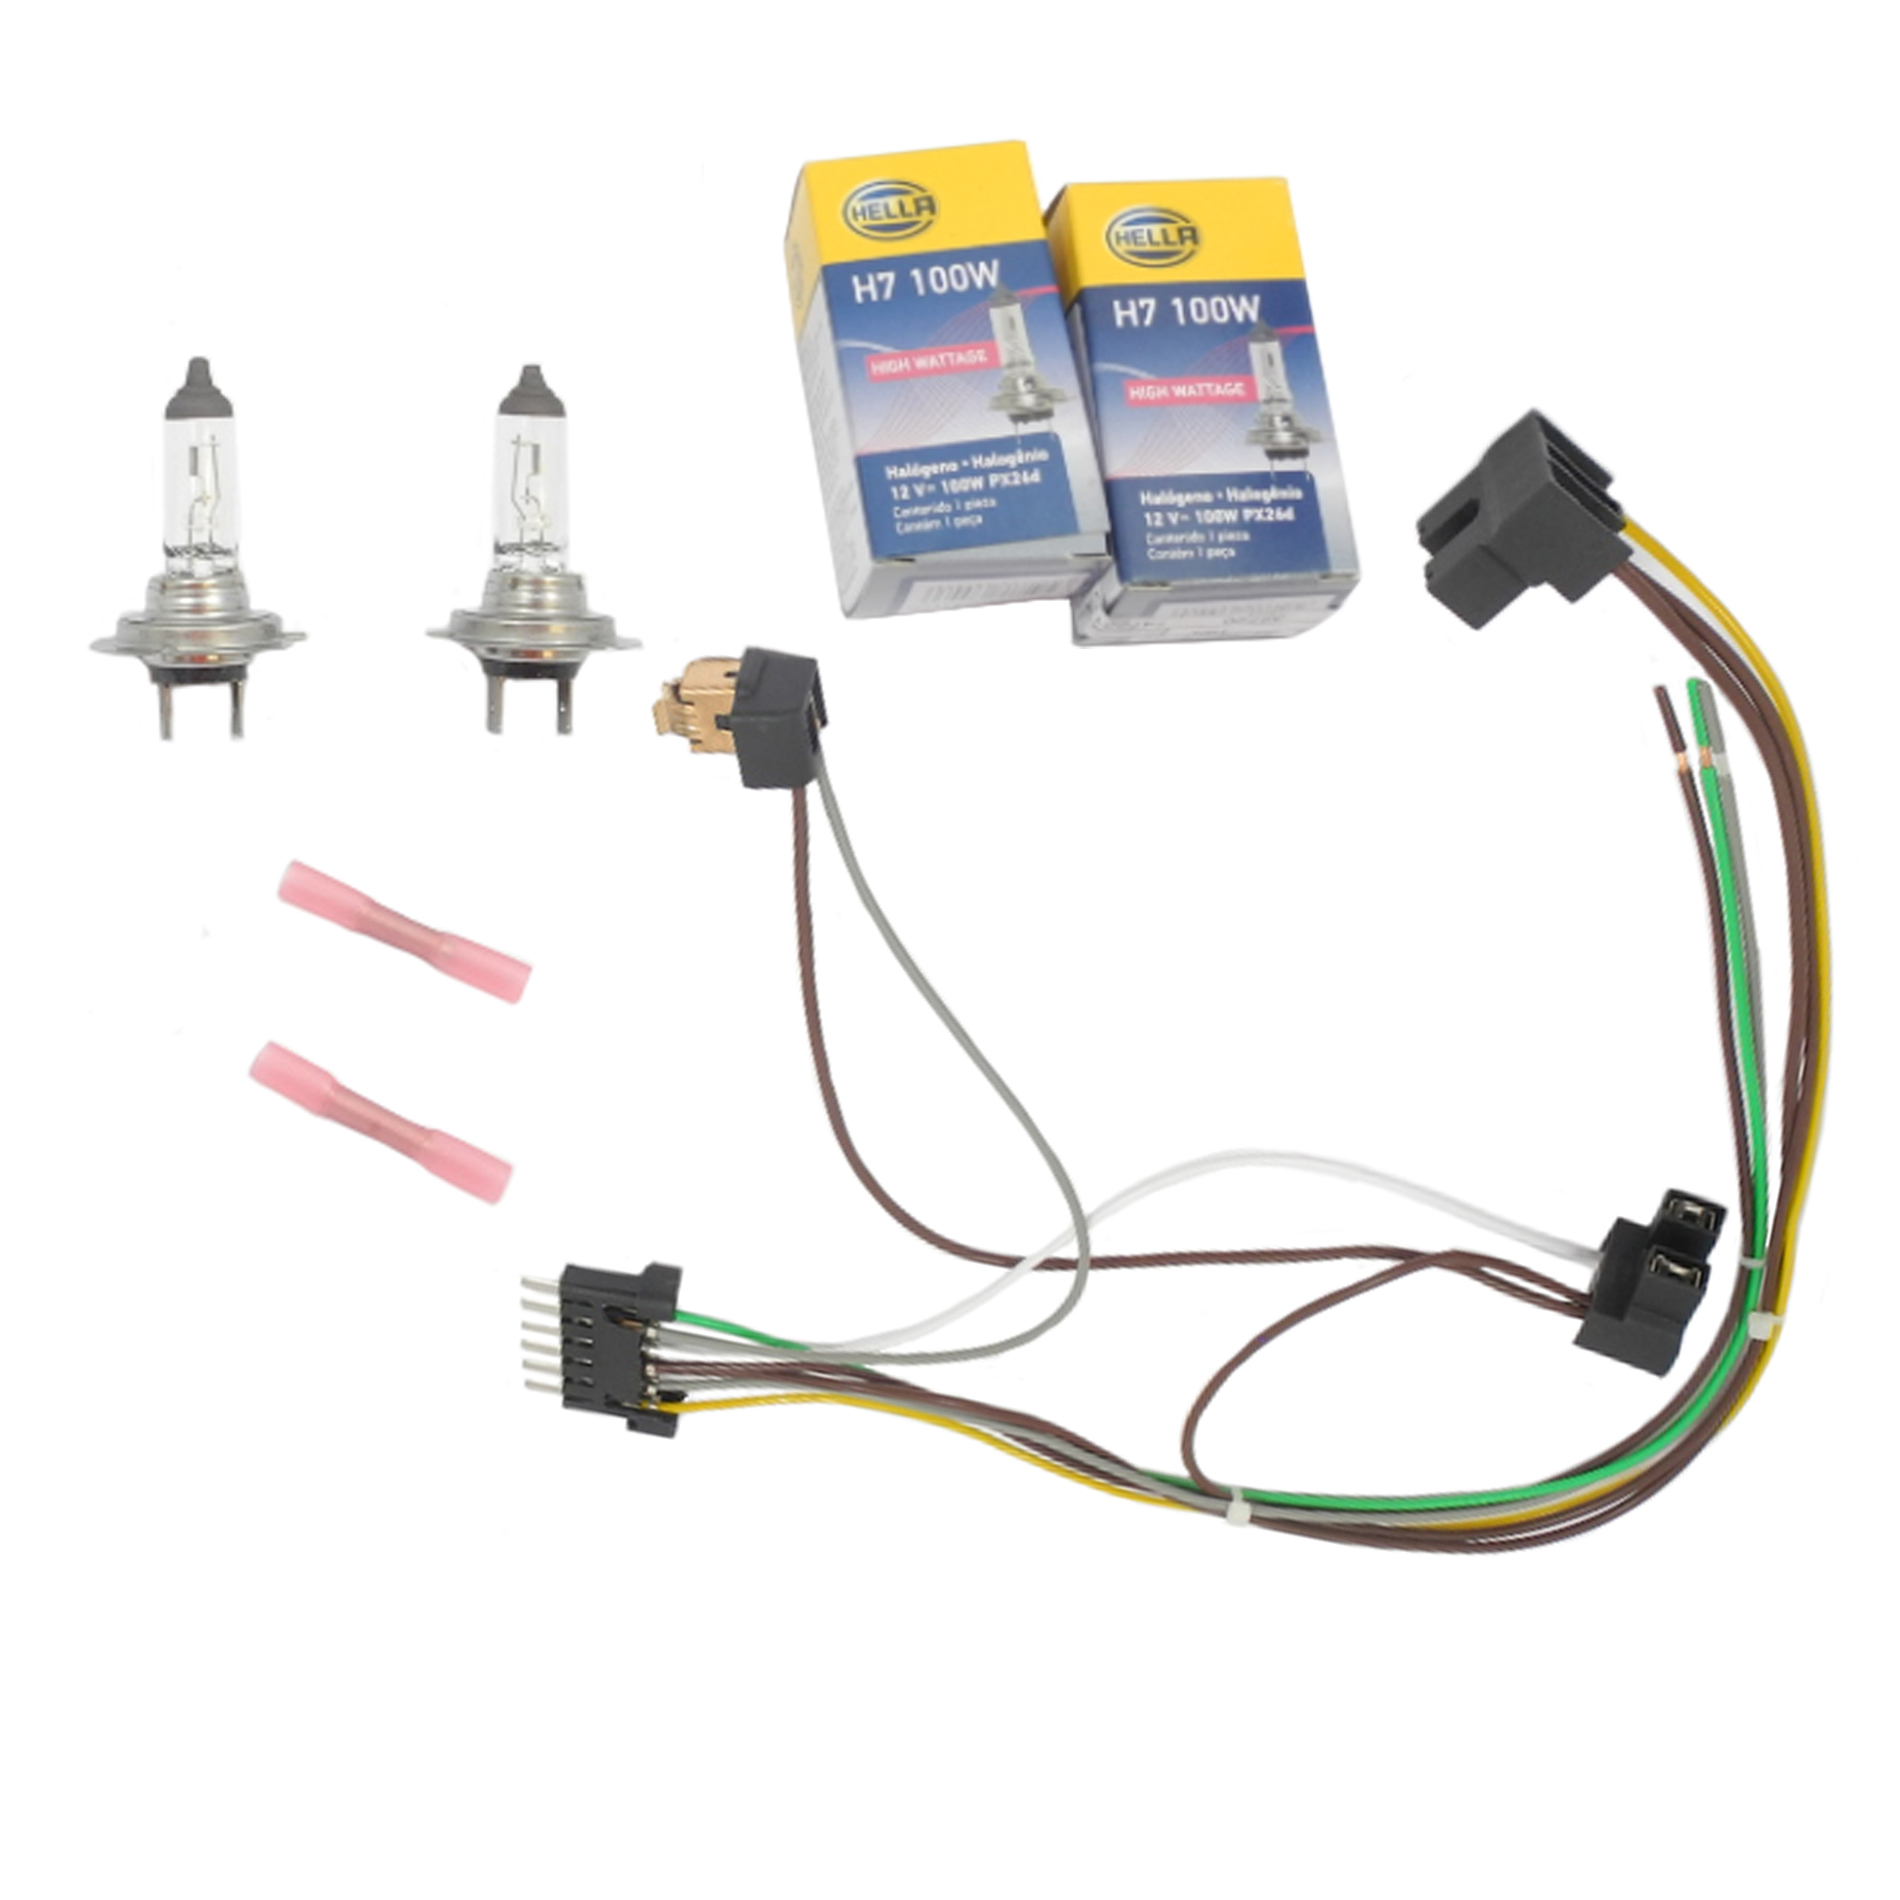 Details about Headlight Wiring Harness & H7 100W Headlight Bulb For on